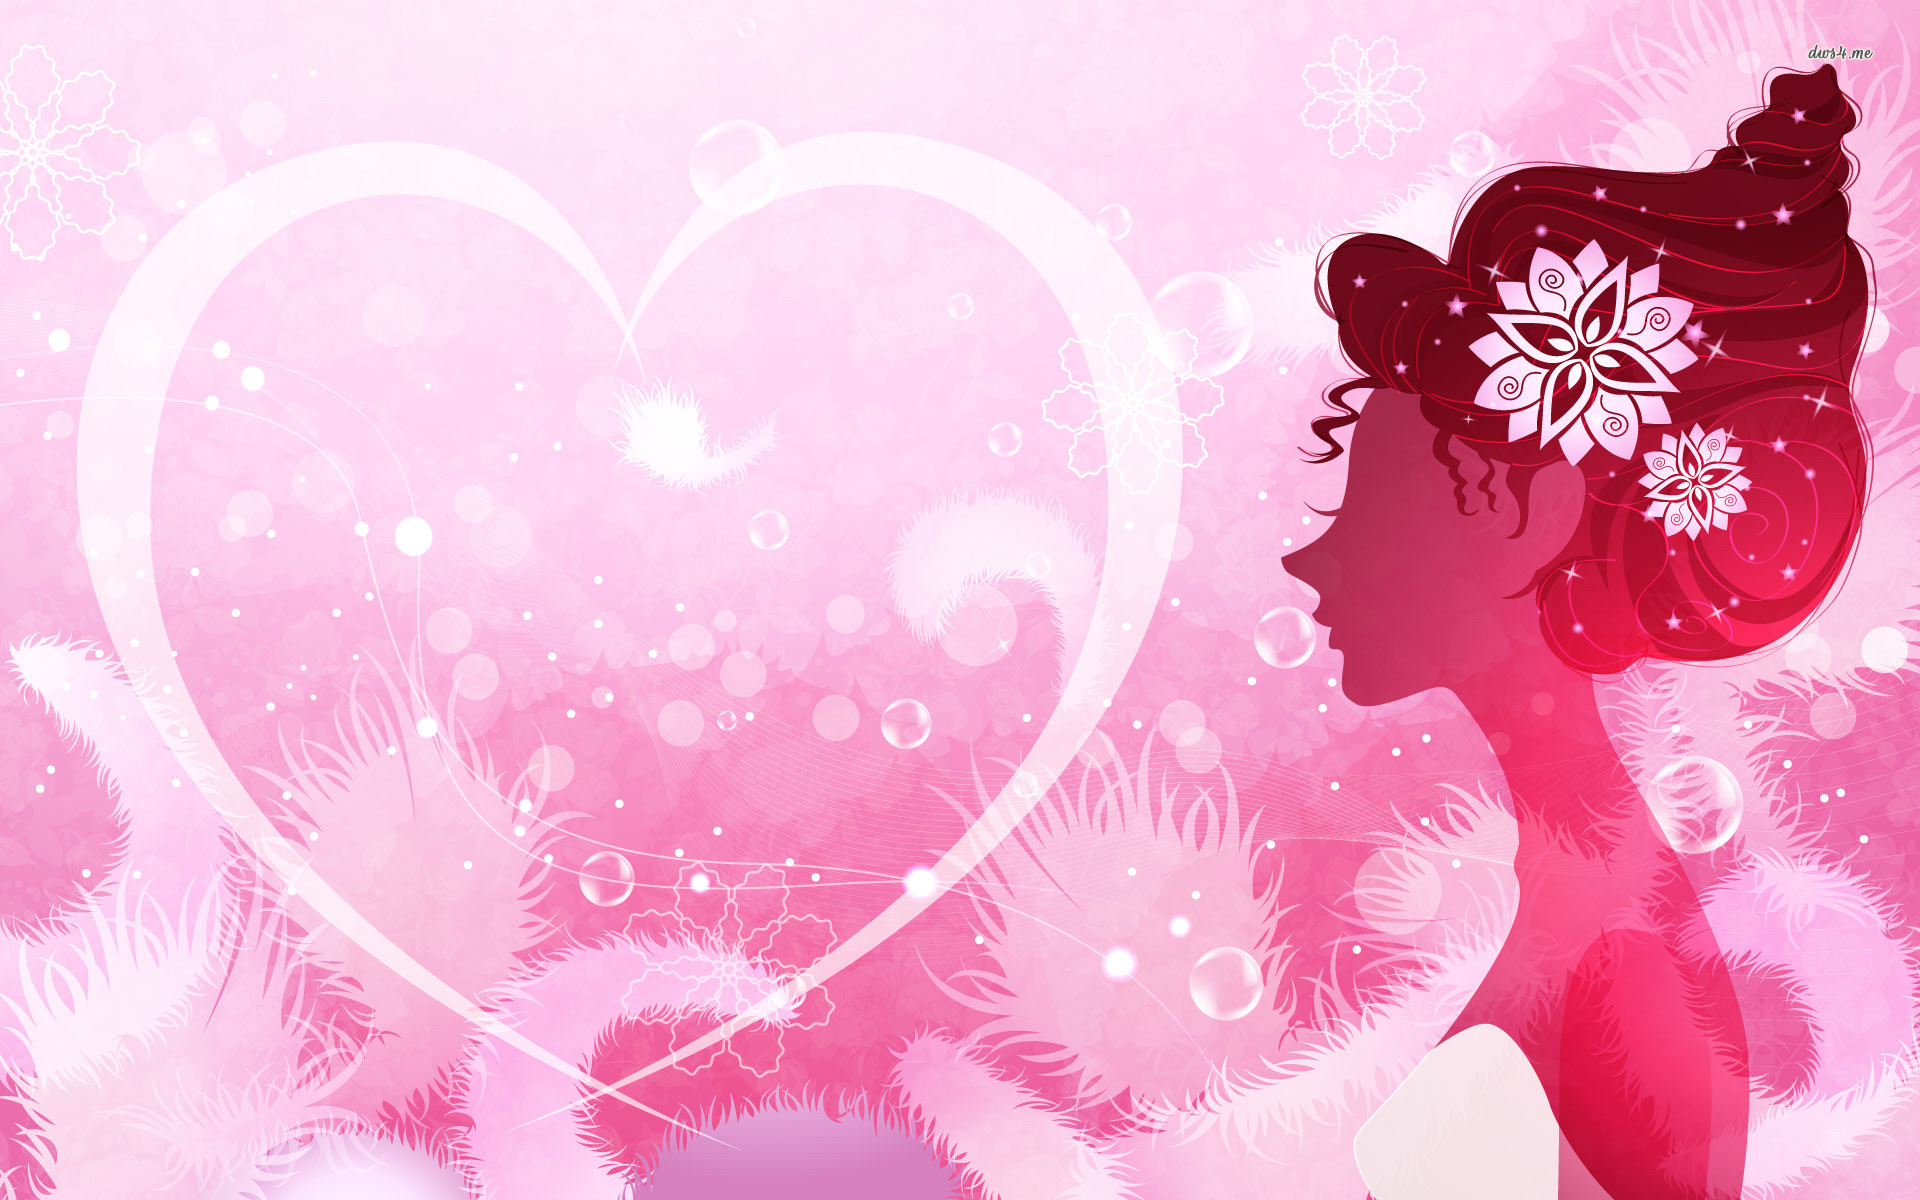 Res: 1920x1200, ... Pink heart and woman wallpaper  ...